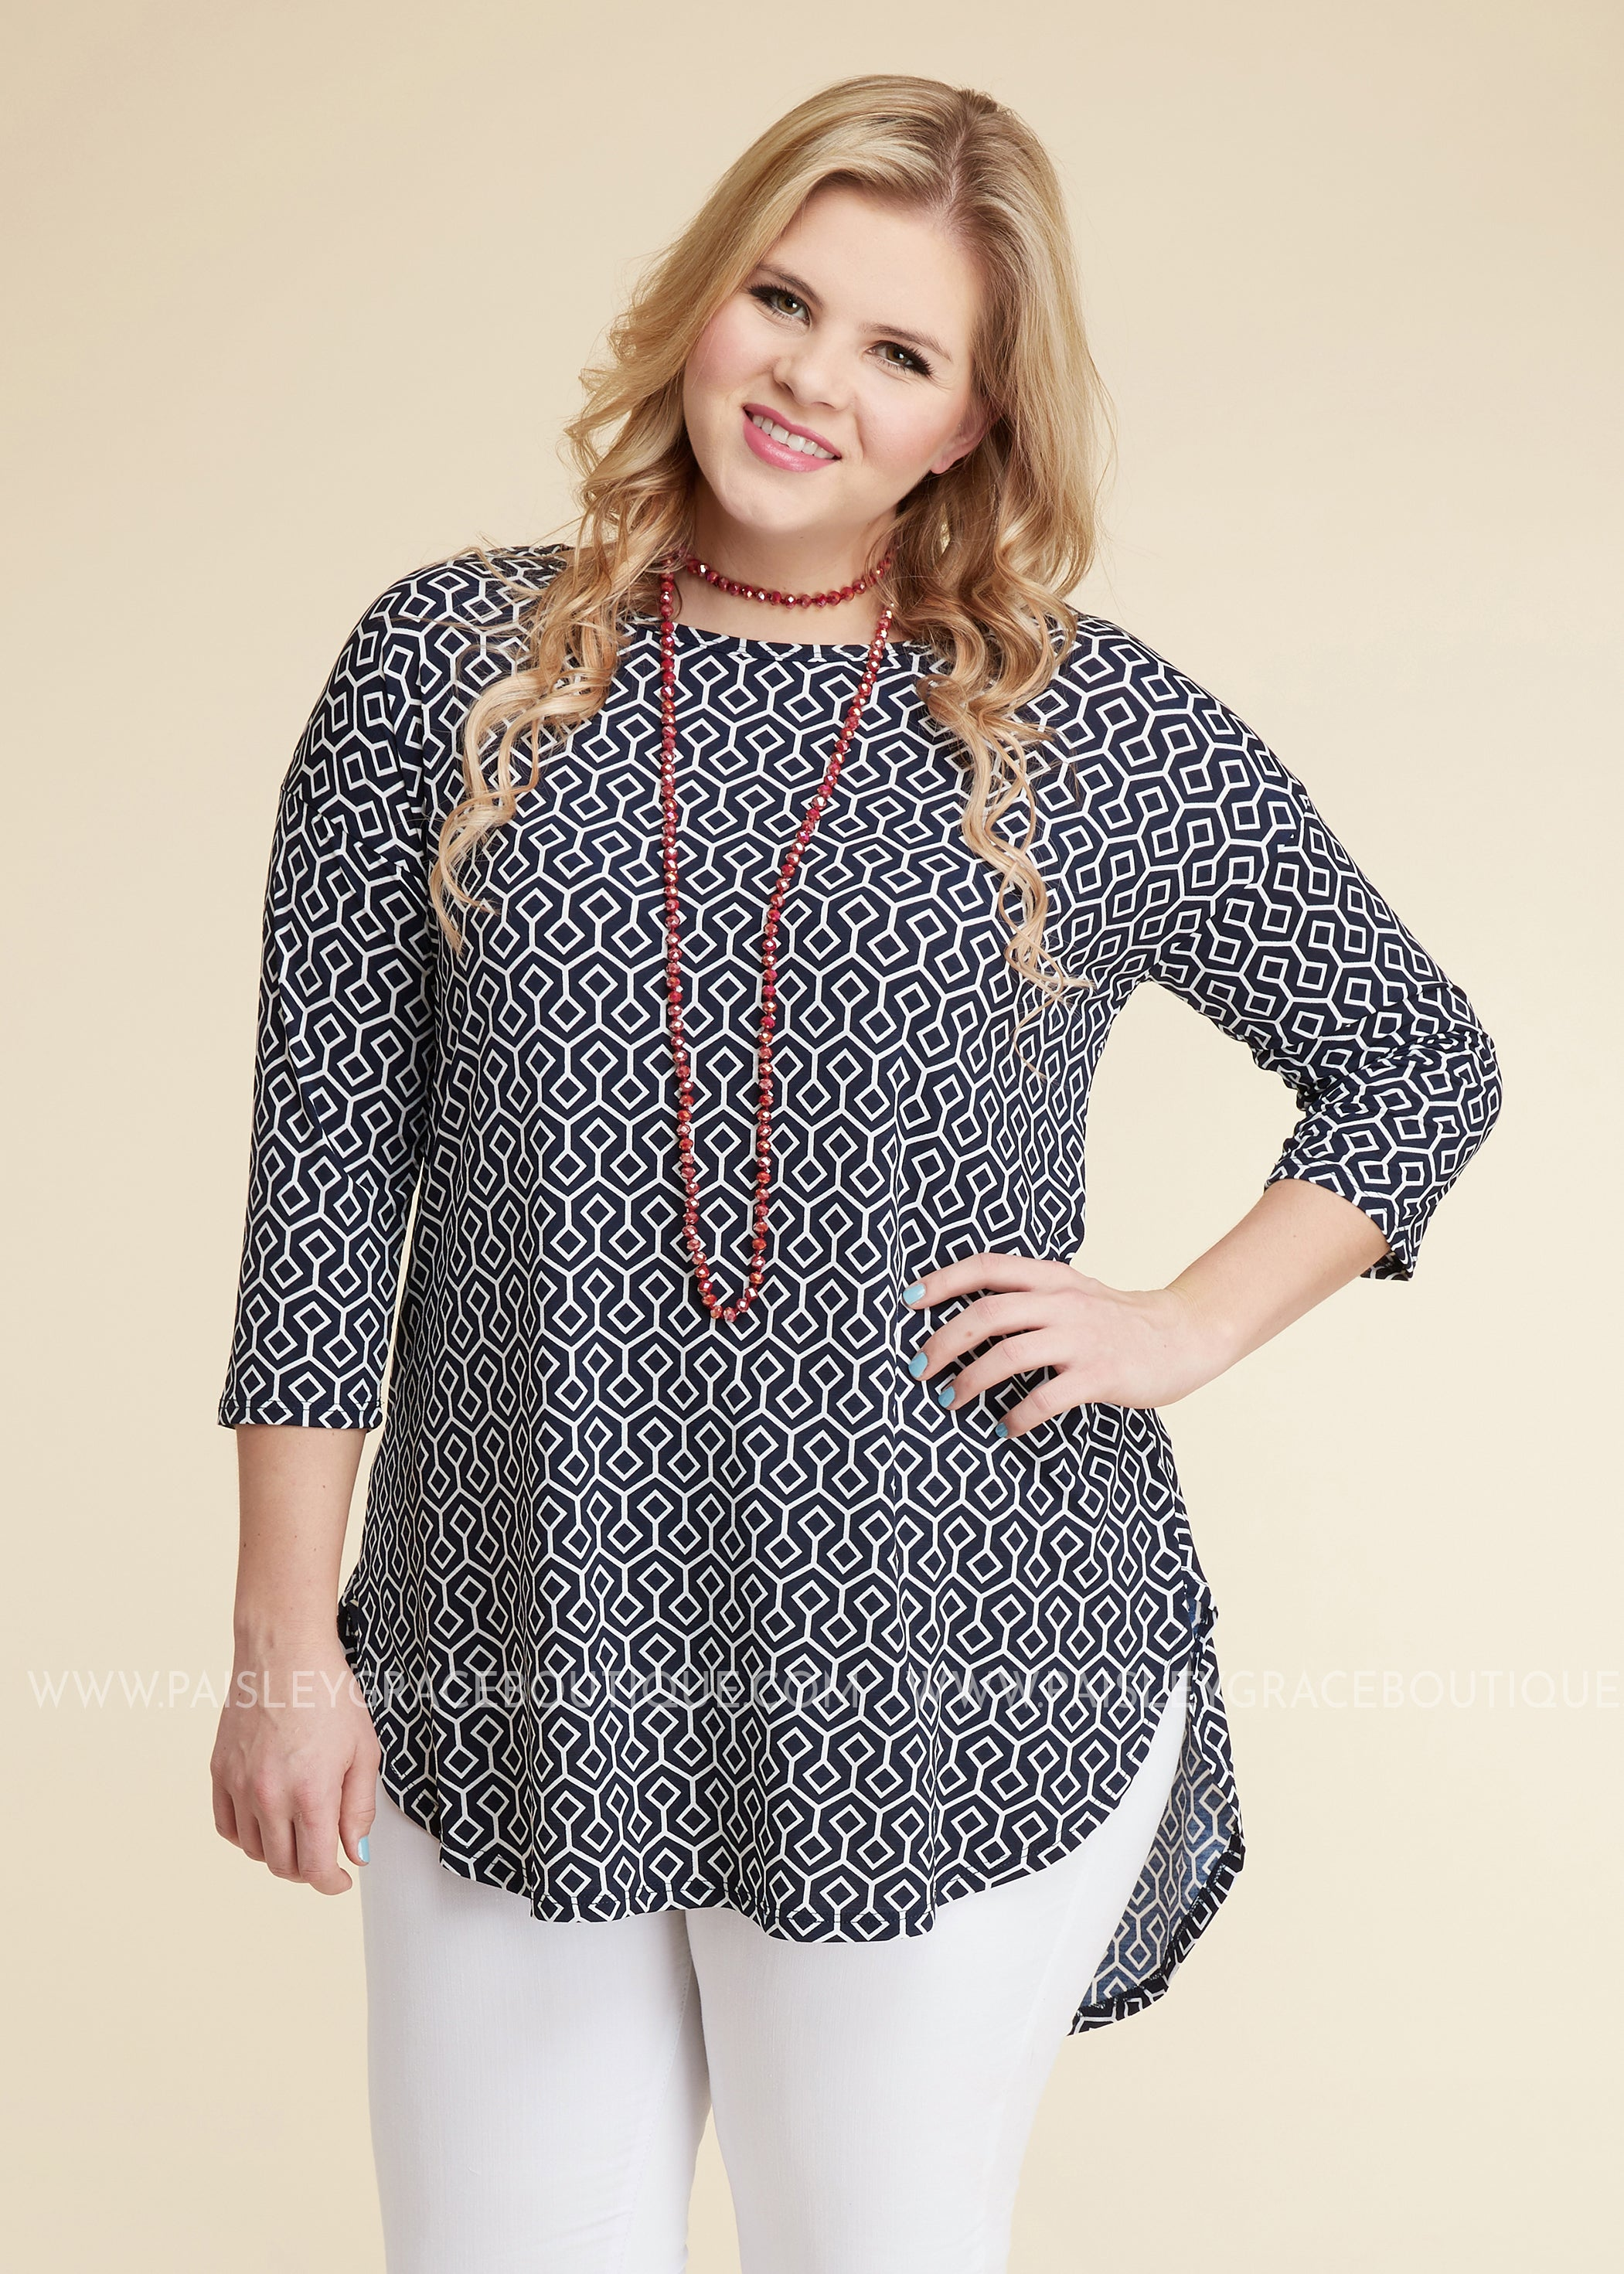 A-Maze Me Top - FINAL SALE